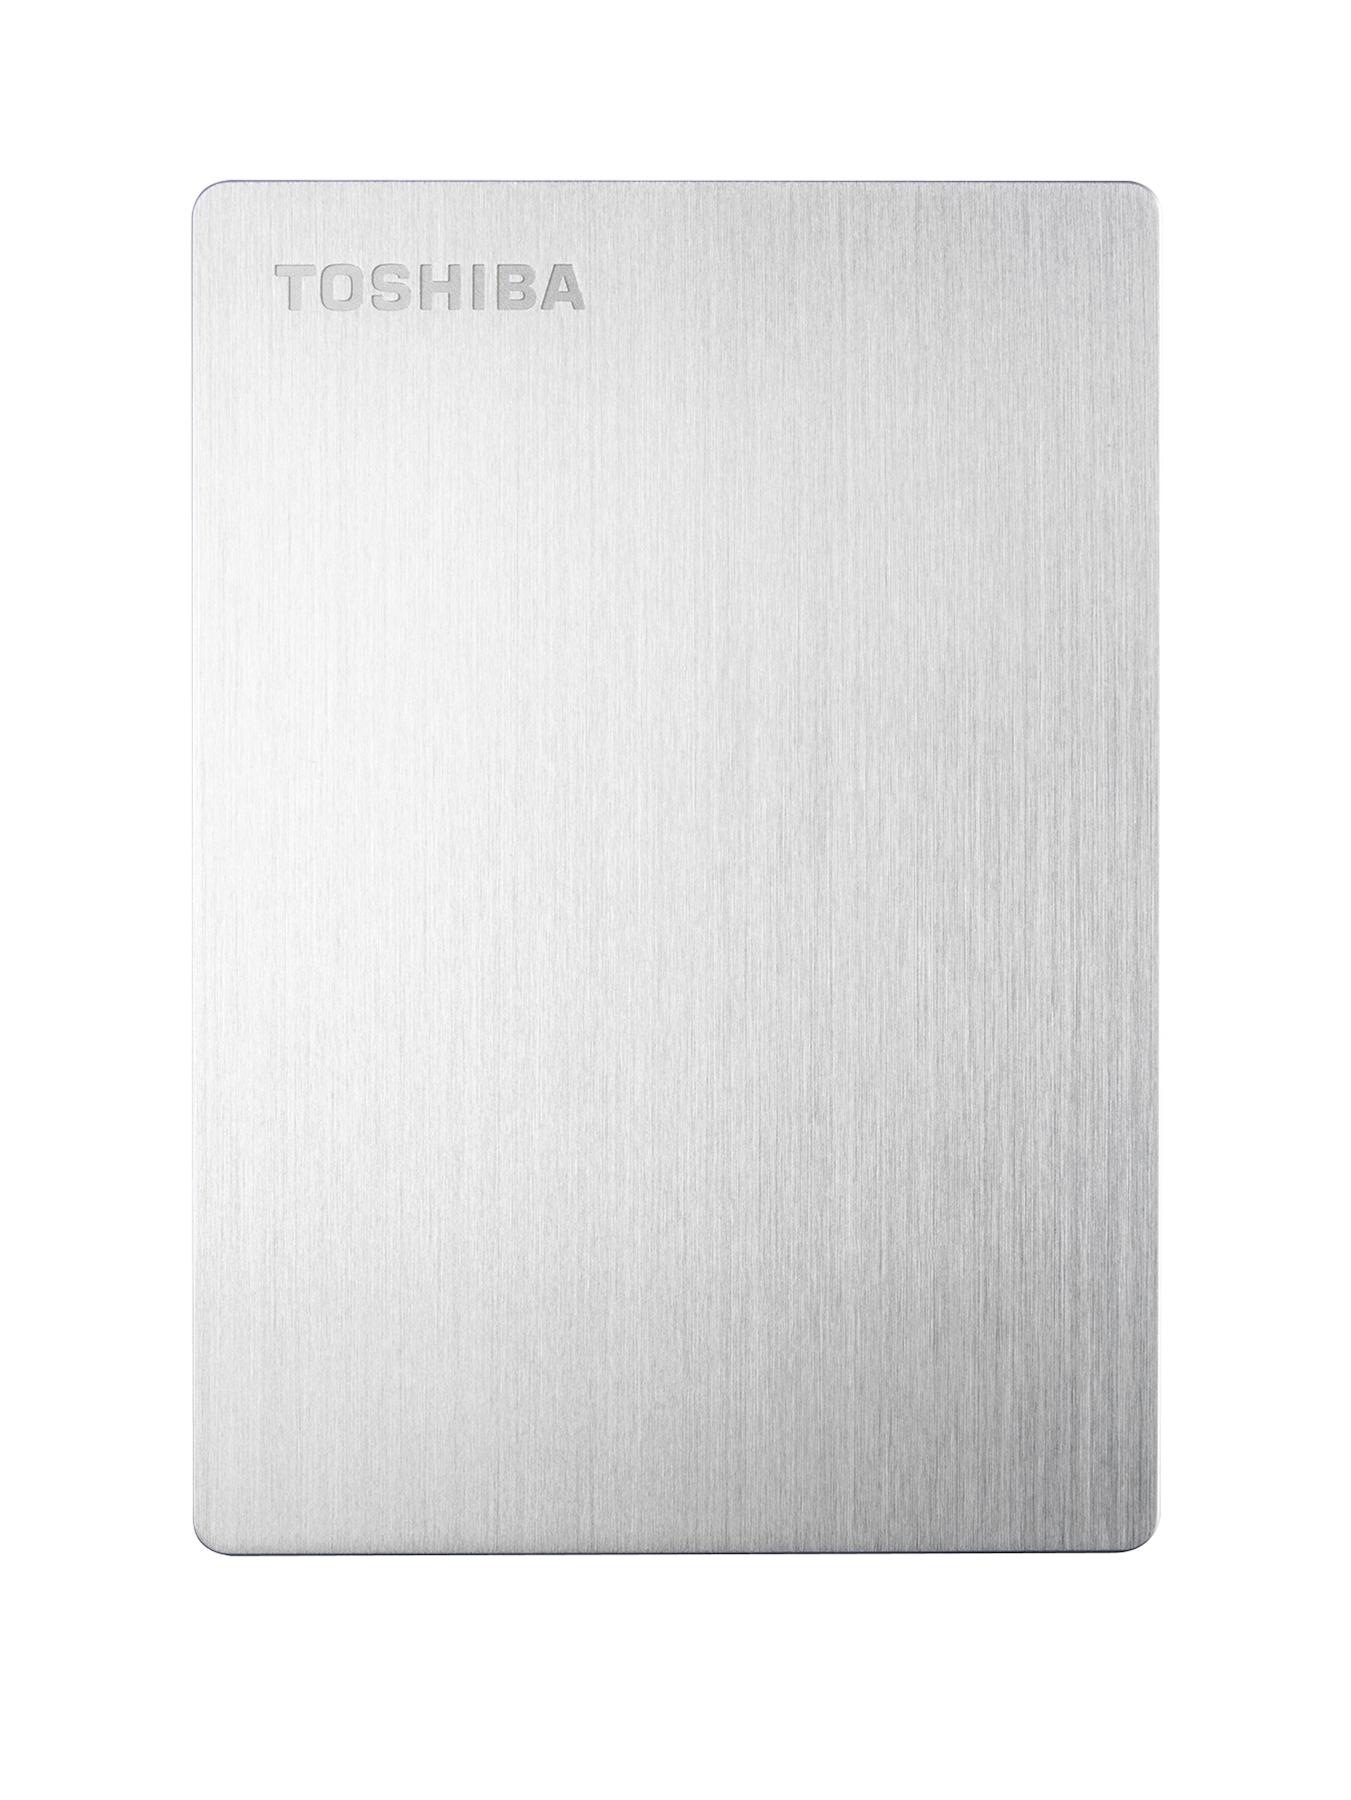 Toshiba Slim Mac 1Tb External Portable Hard Drive - Silver